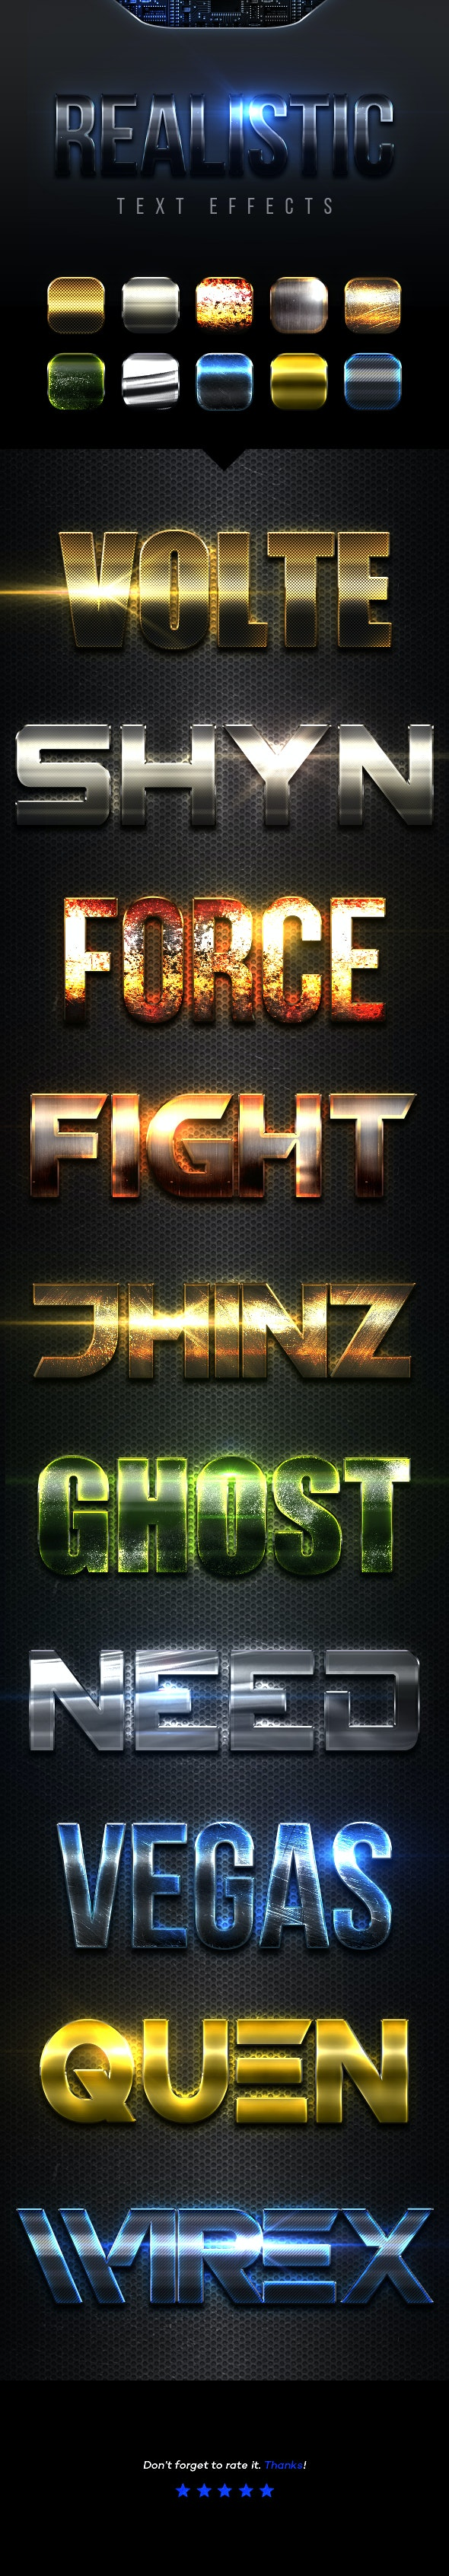 Realistic Text Effects Vol.9 - Text Effects Styles